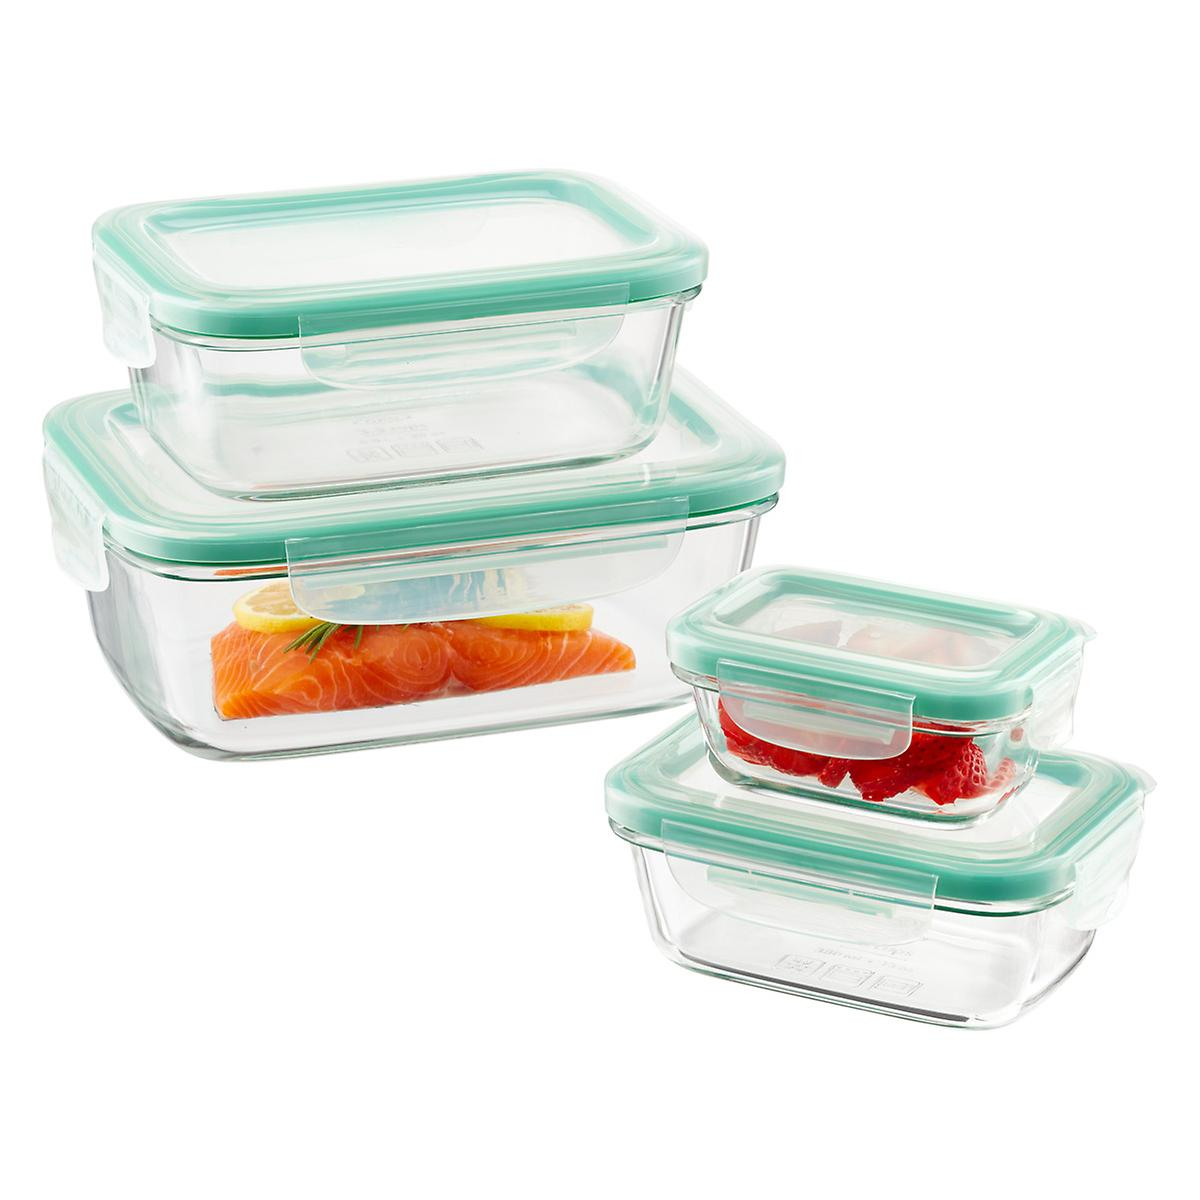 OXO Good Grips 8 Piece Smart Seal Rectangular Glass Food Storage Set